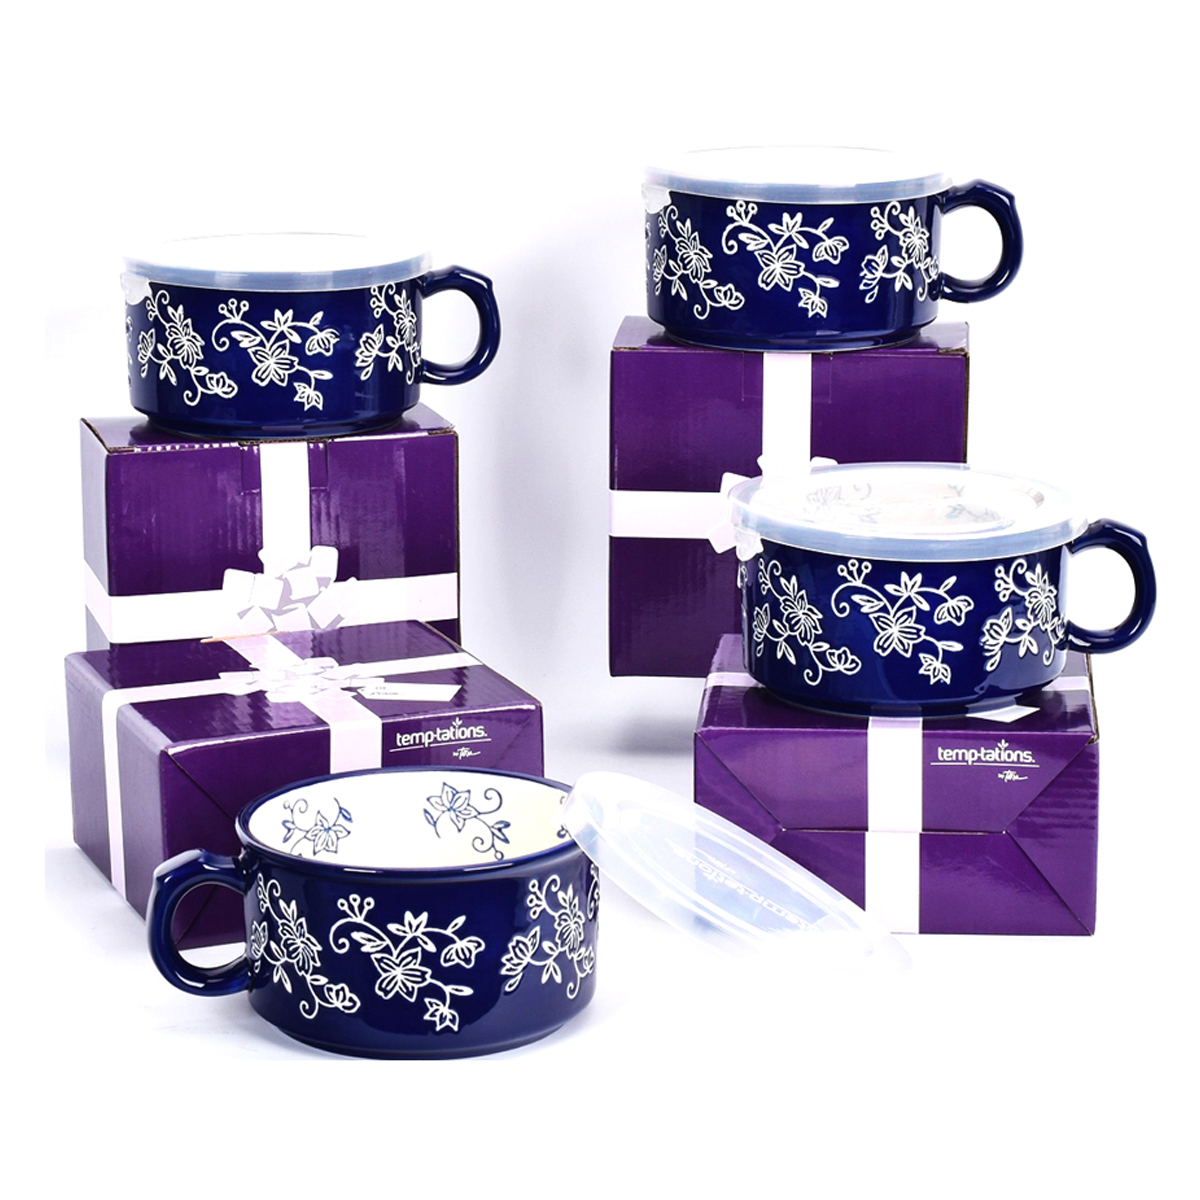 temp-tations® Floral Lace Meal Mugs with Gift Boxes Set – 4 Piece – Blue